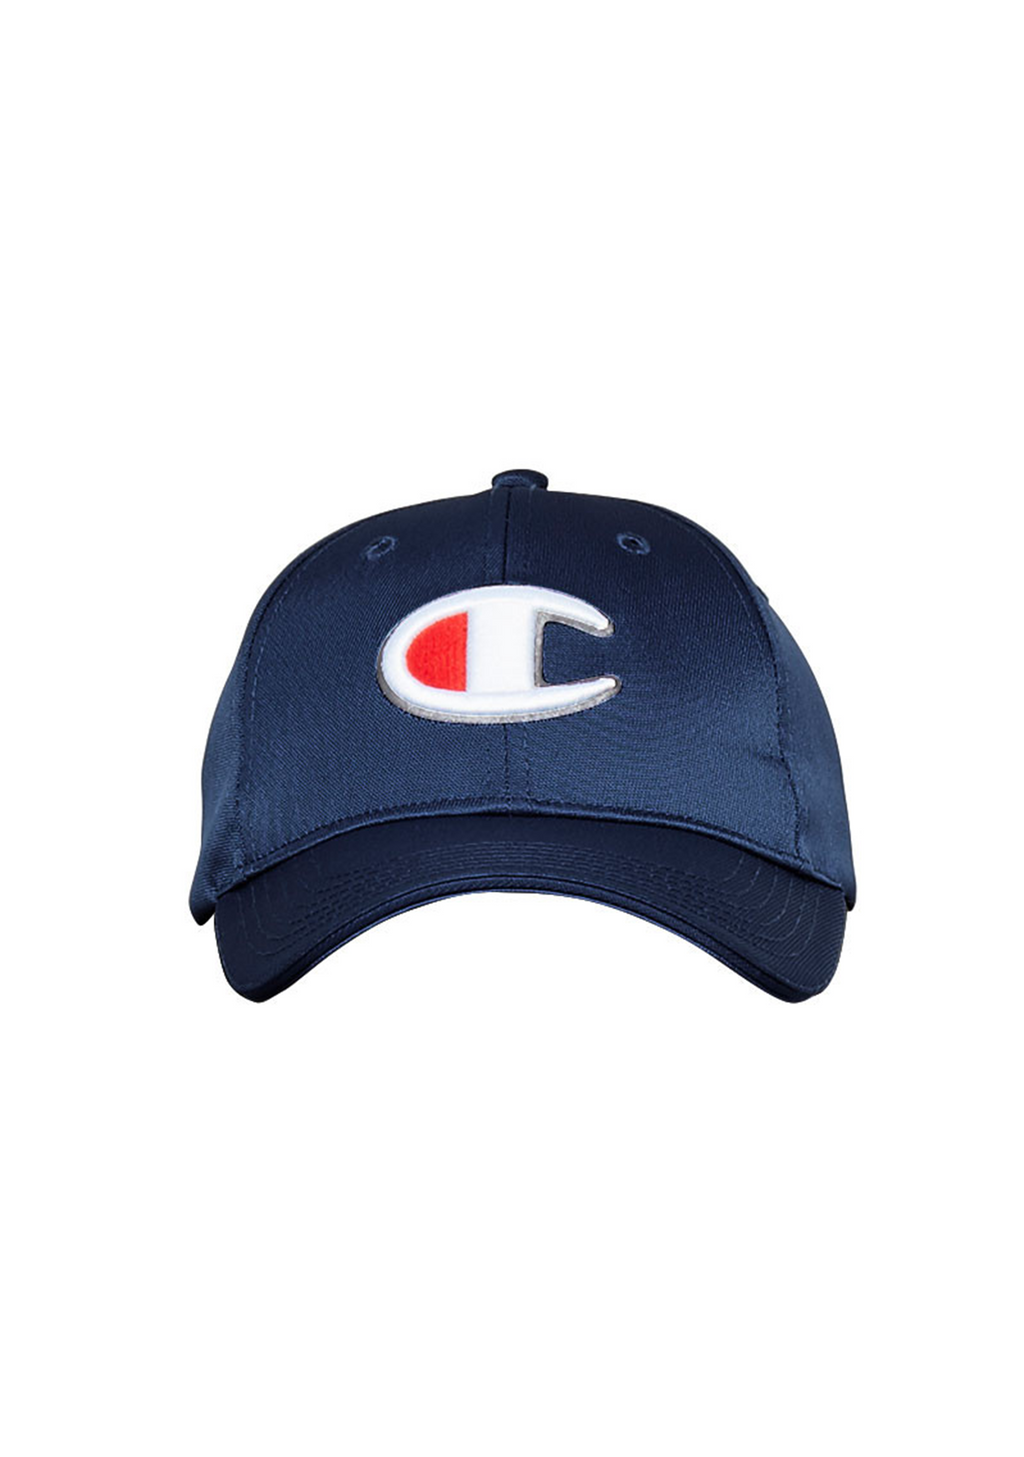 CHAMPION UNISEX PERFORMANCE LOGO CAP <br> Z1019H